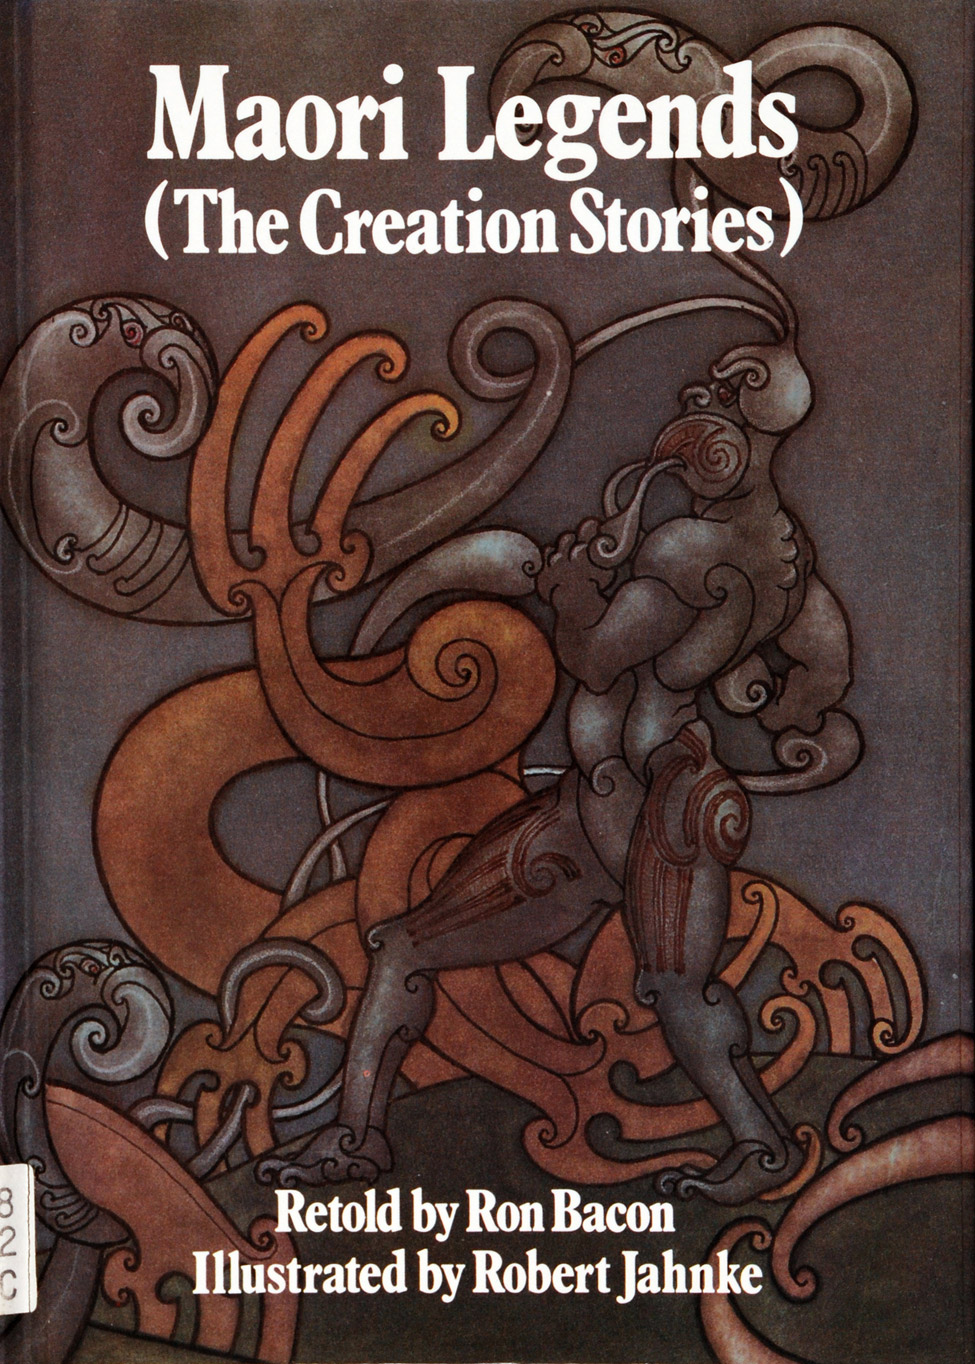 <i>----. Maori Legends (The Creation Stories) Retold by Ron Bacon; Illustrated by Robert Jahnke. </i> Auckland: Shortland Educational Publications, 1984.